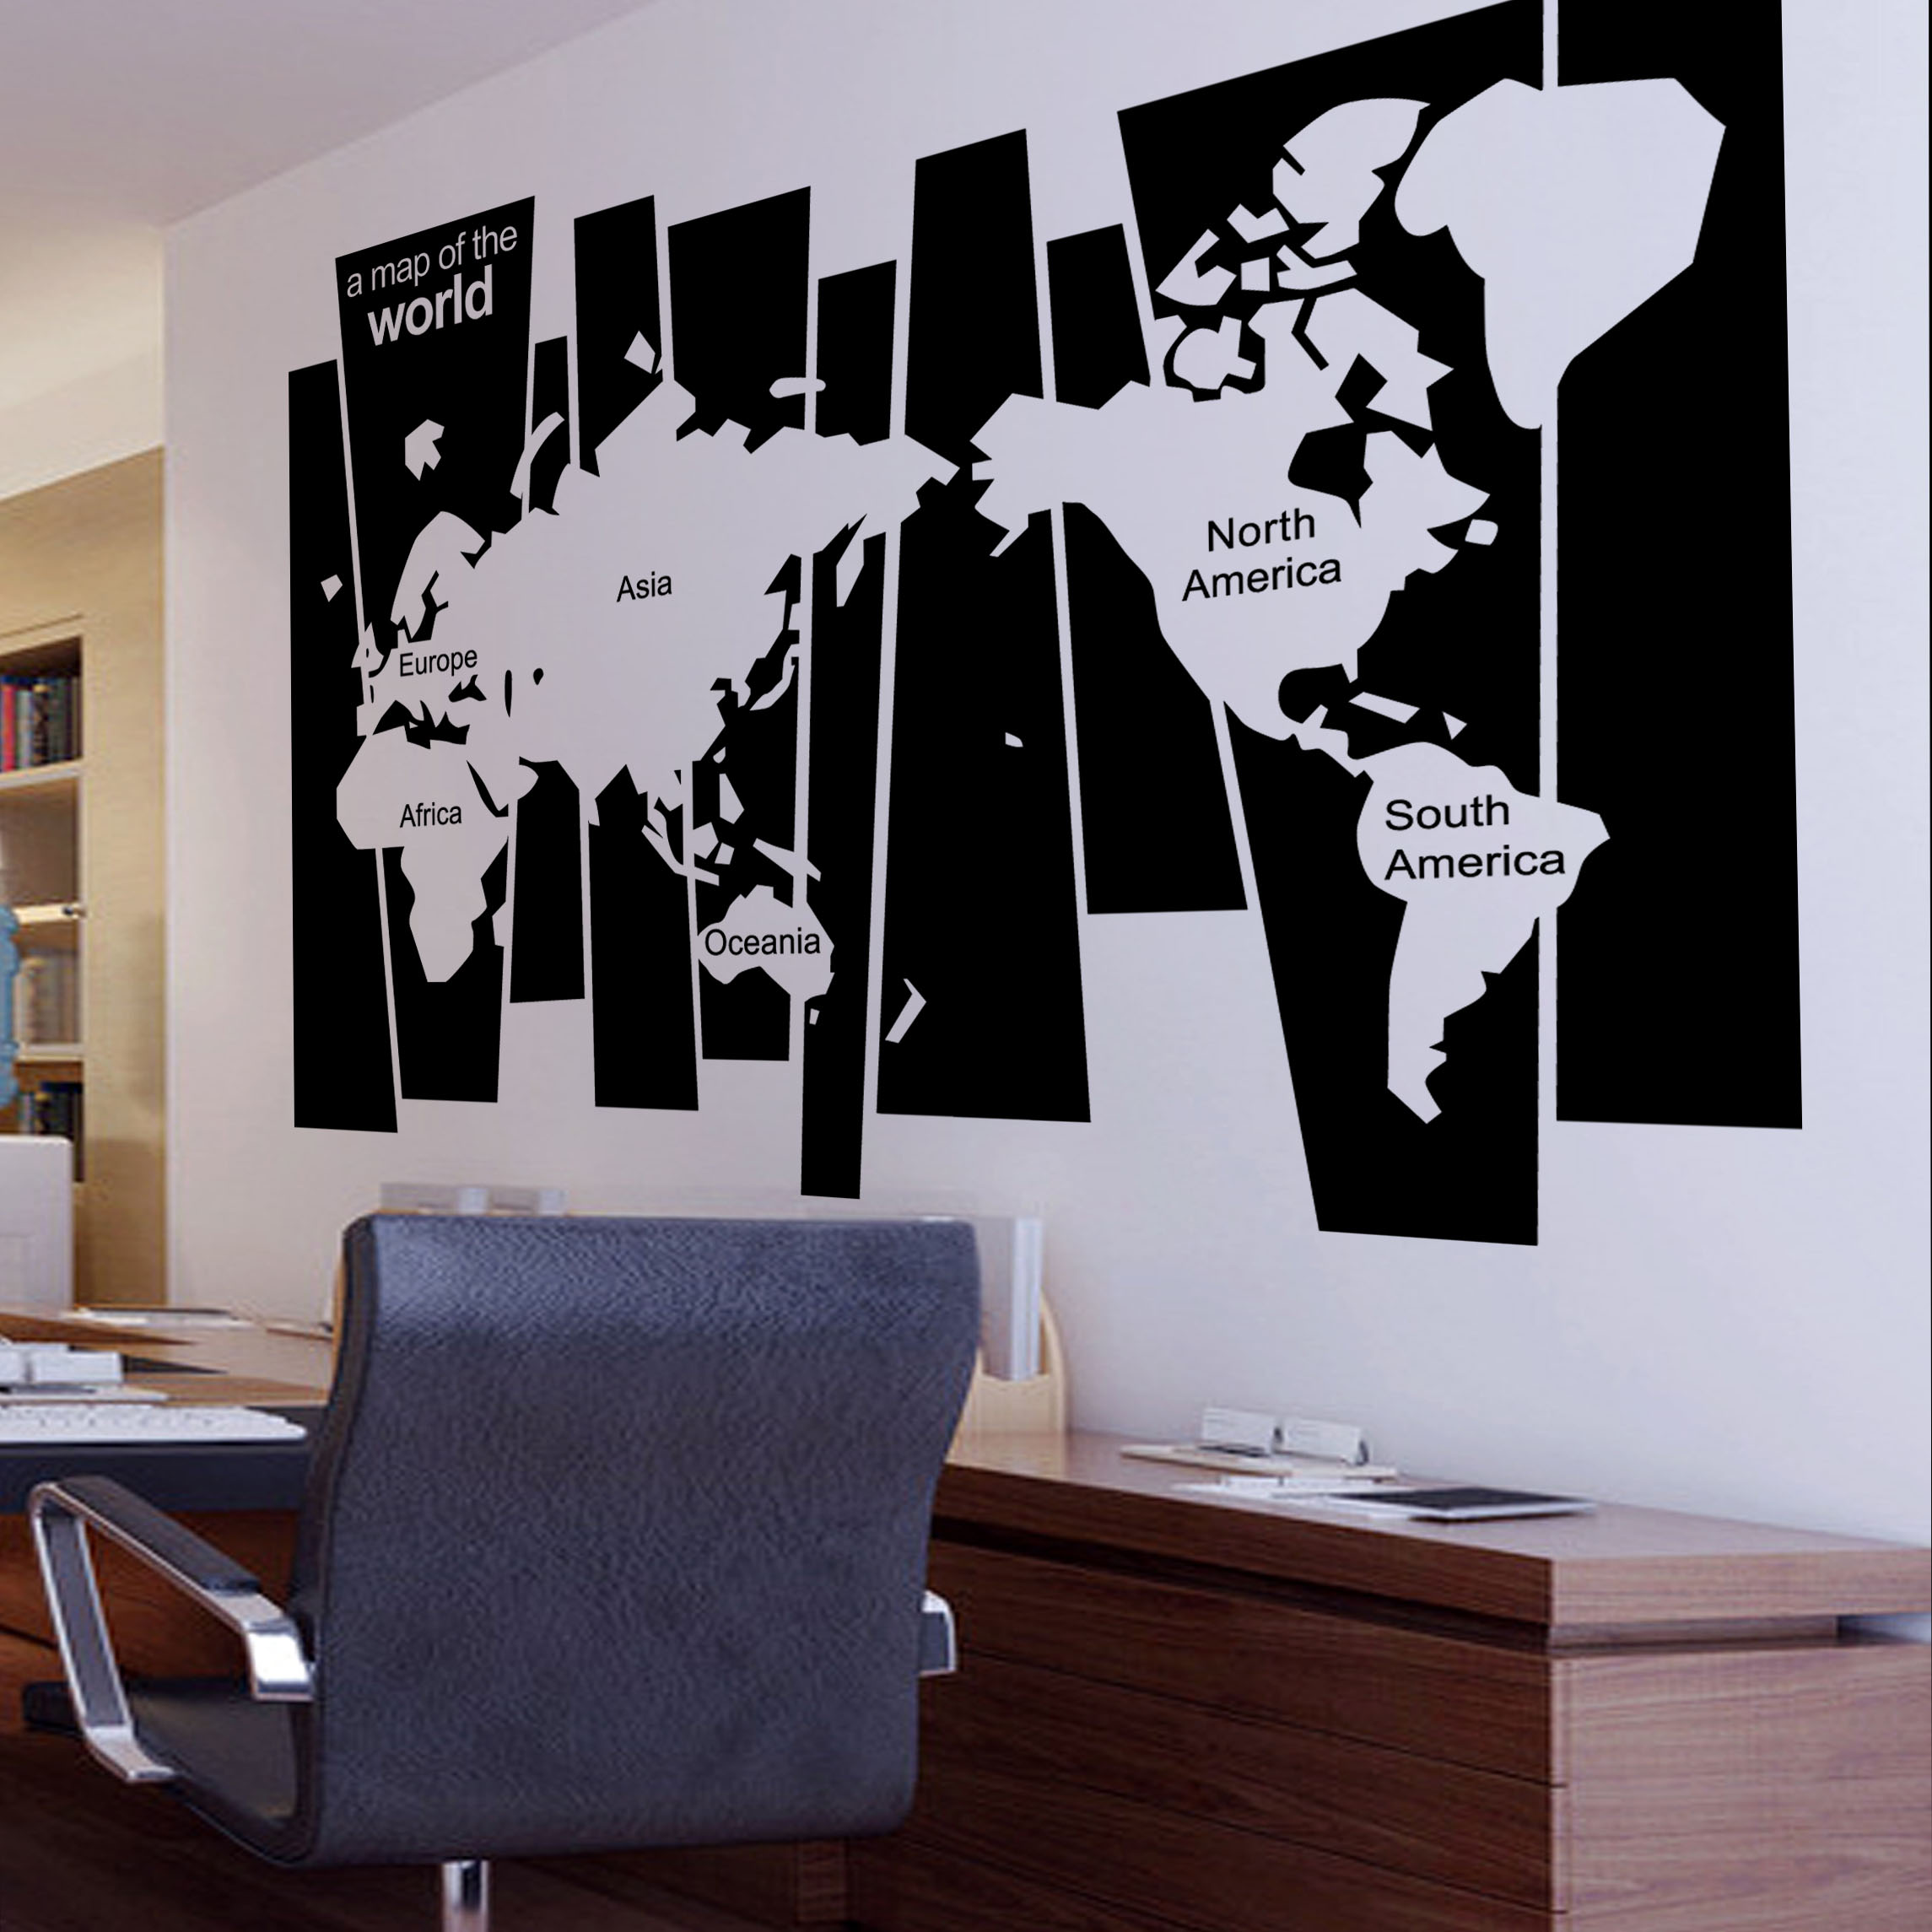 2018 new arrival world map wall sticker map of world wall decal home 2018 new arrival world map wall sticker map of world wall decal home decoration map of the world office school wall decals in wall stickers from home gumiabroncs Image collections